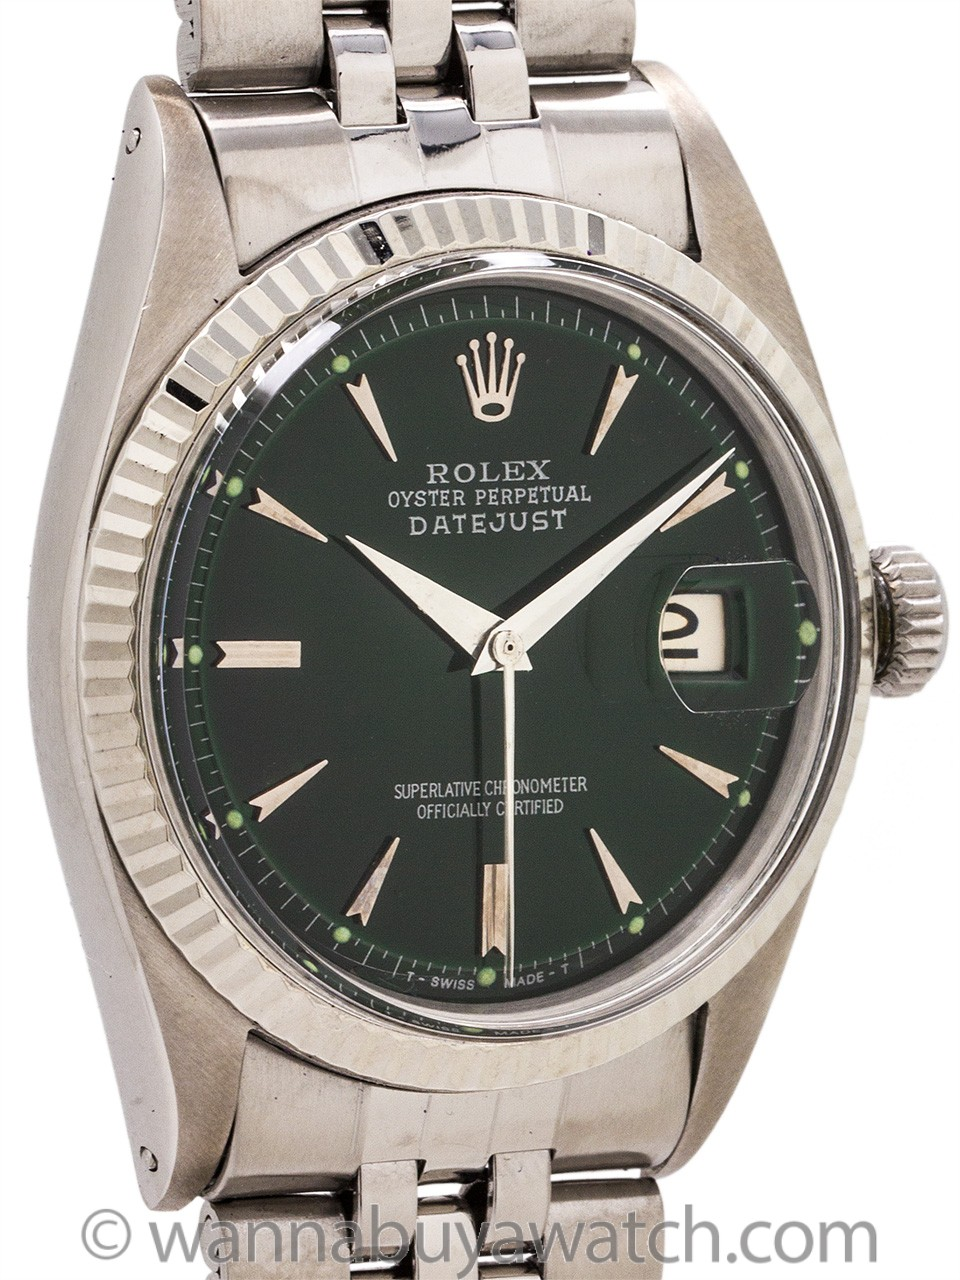 Rolex Datejust ref 1601 Stainless Steel circa 1964